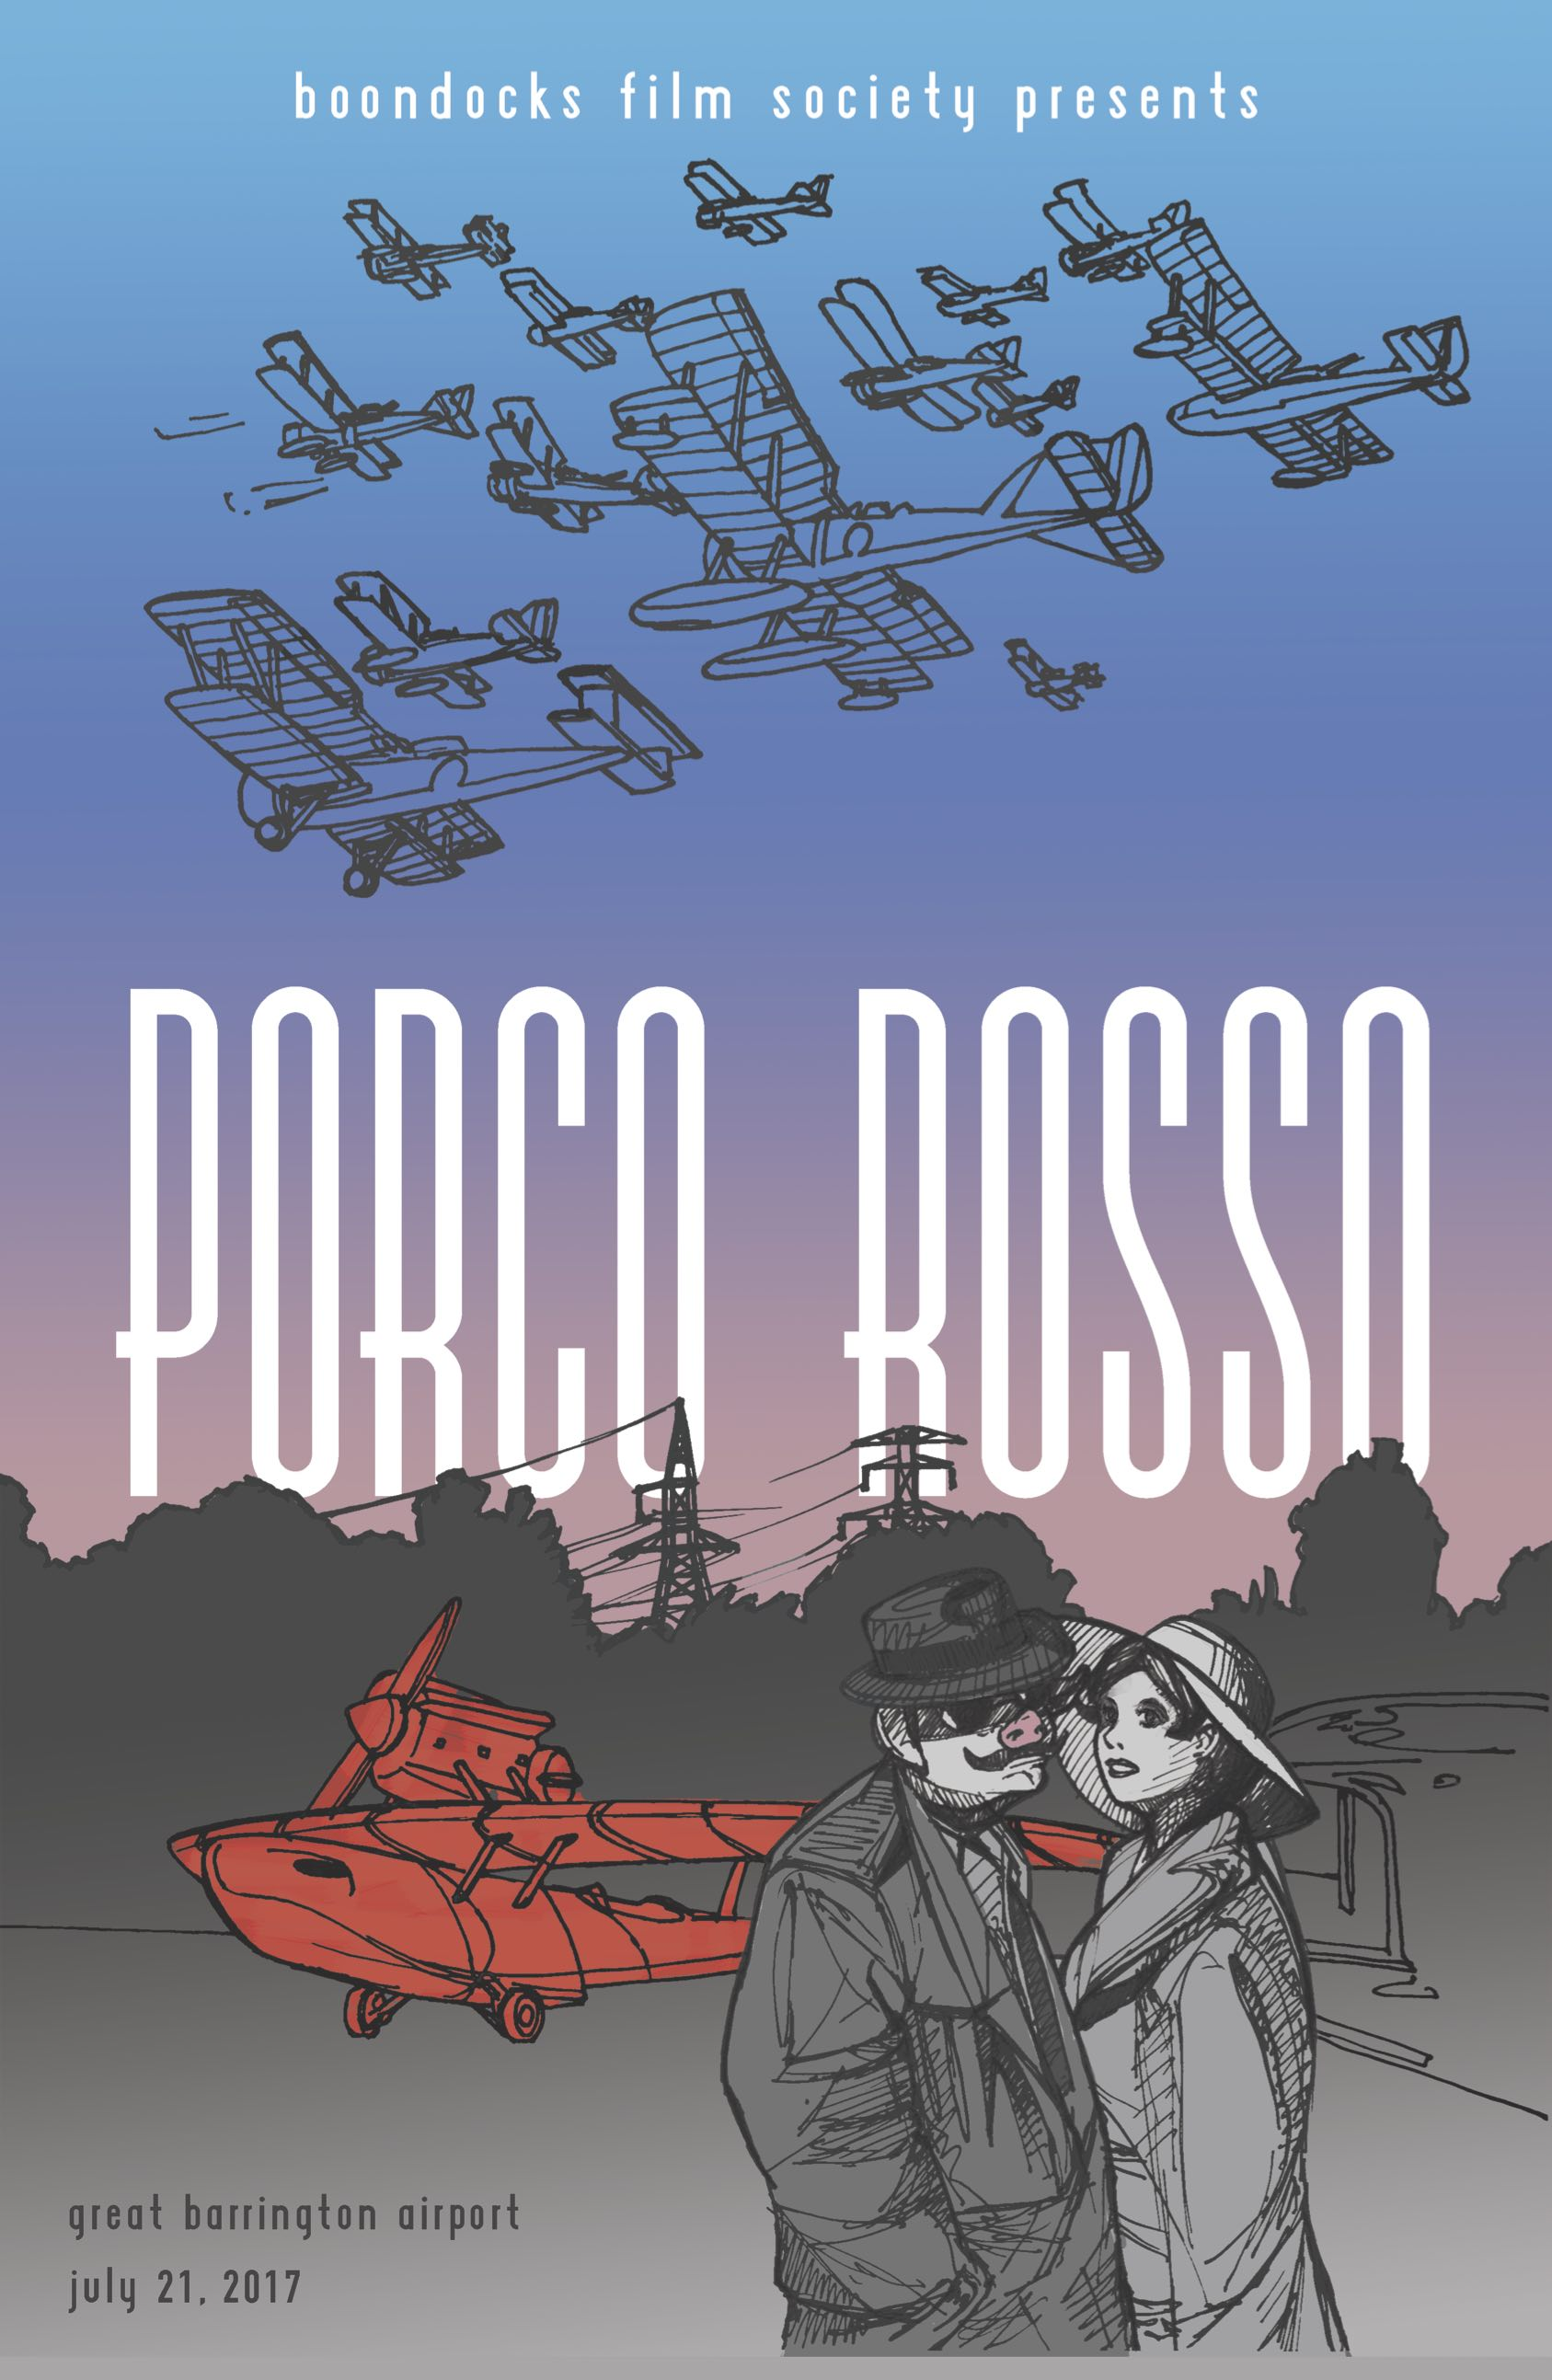 Porco Rosso at Great Barrington Airport